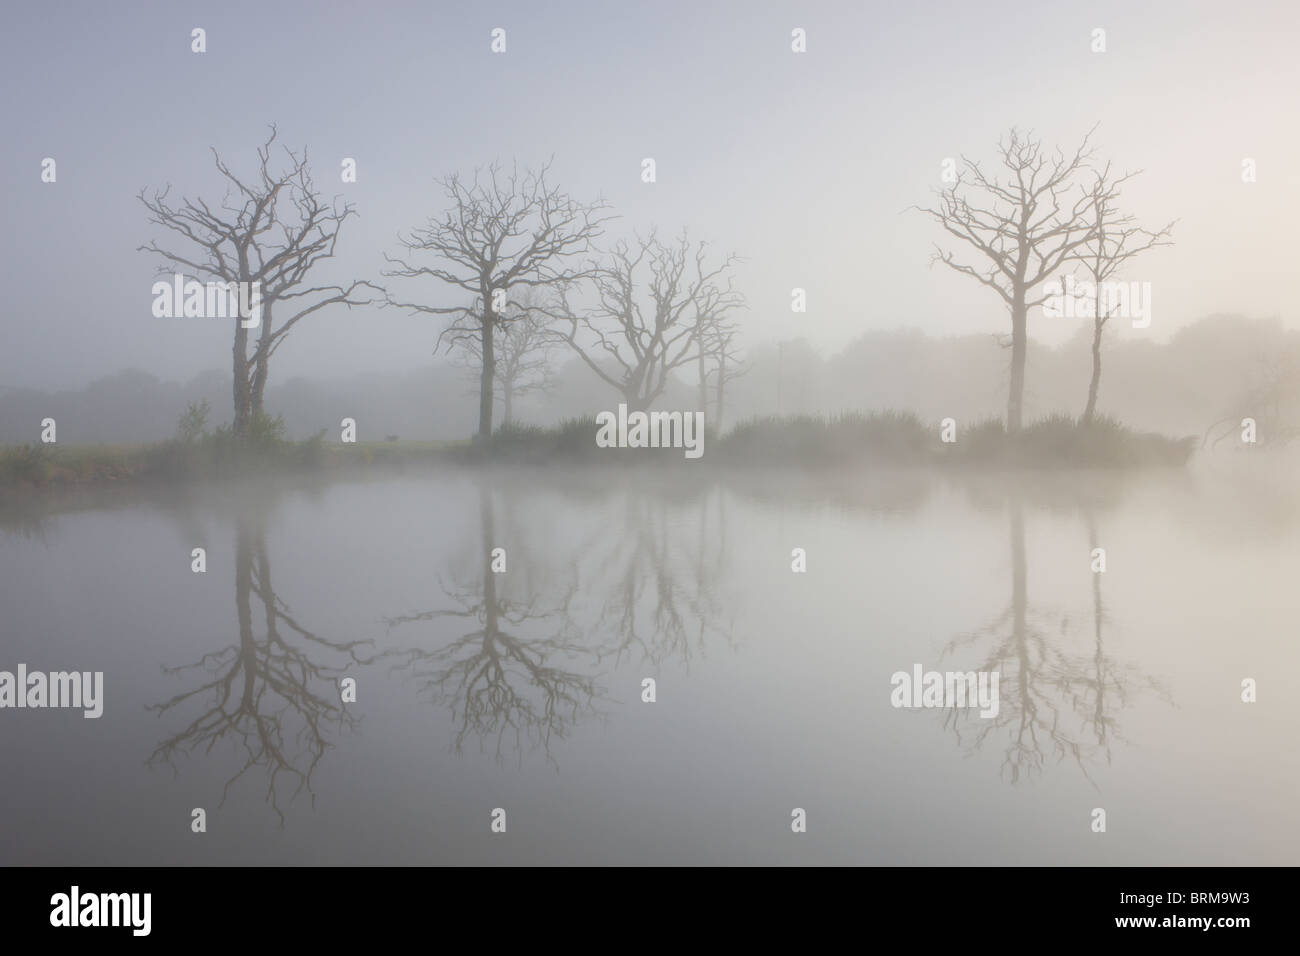 Misty morning on a fishing lake with dead trees, Morchard Road, Devon, England. - Stock Image